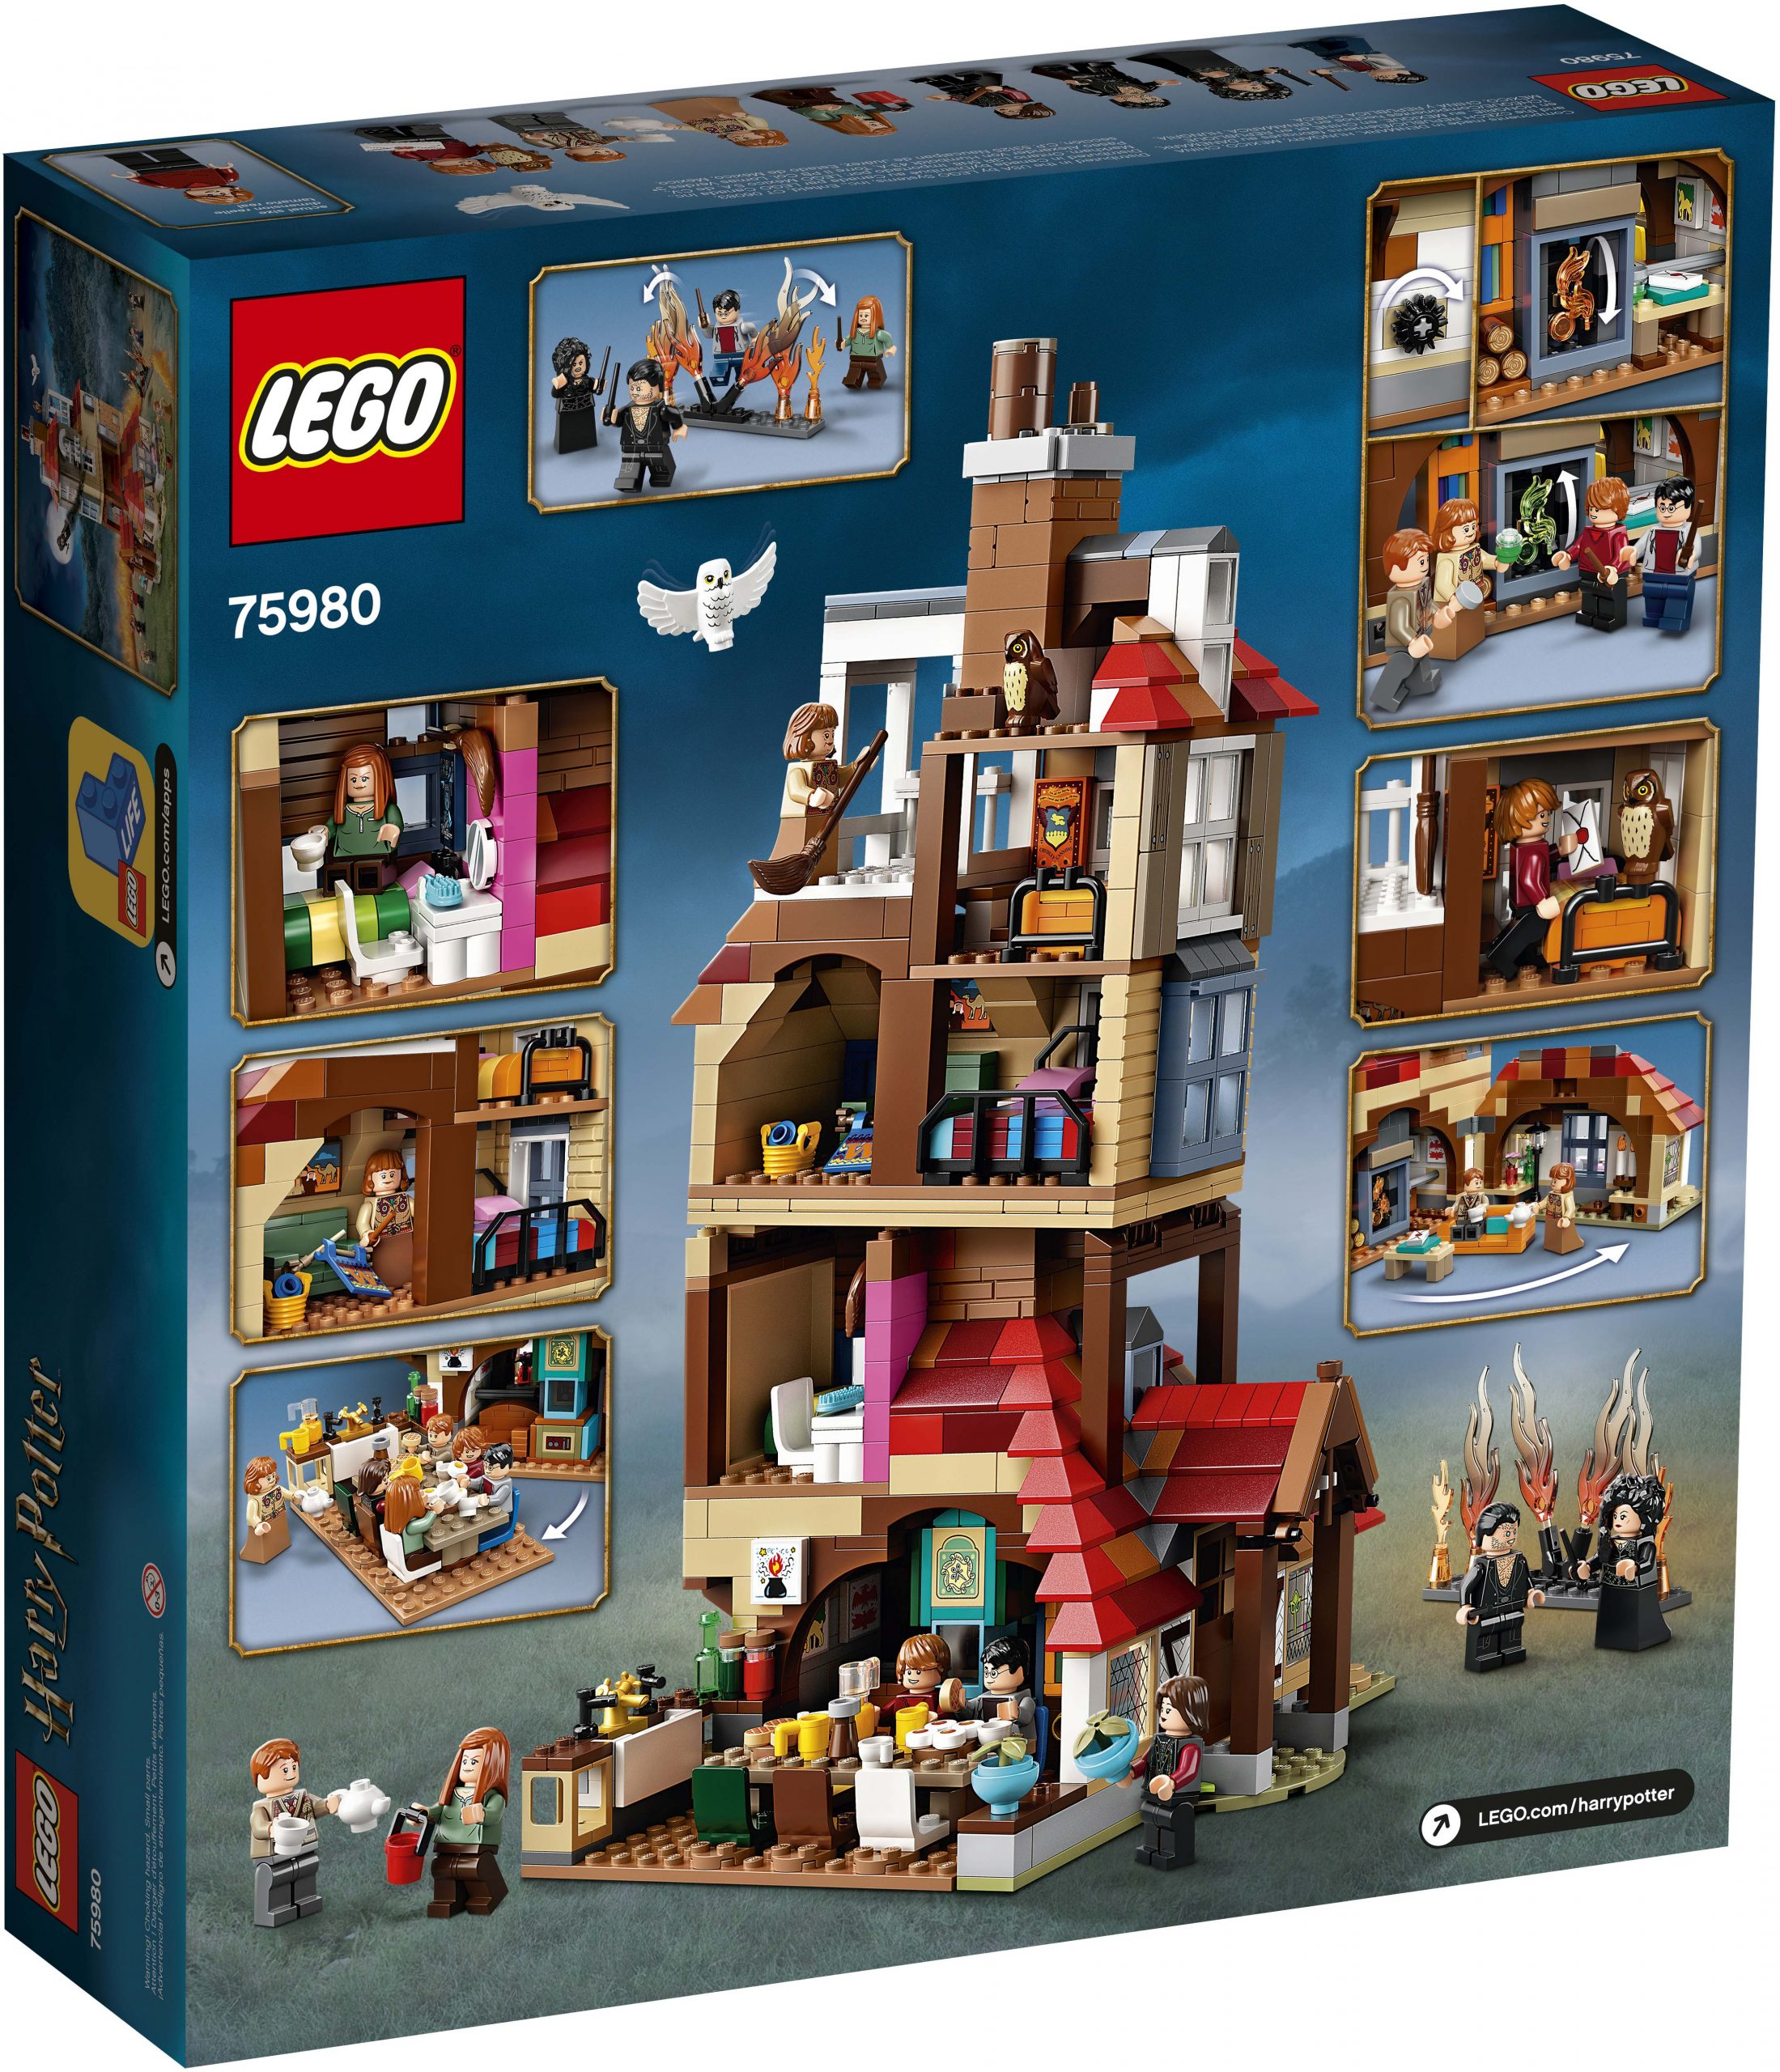 Lego Harry Potter Summer 2020 Sets Officially Announced The Brick Fan